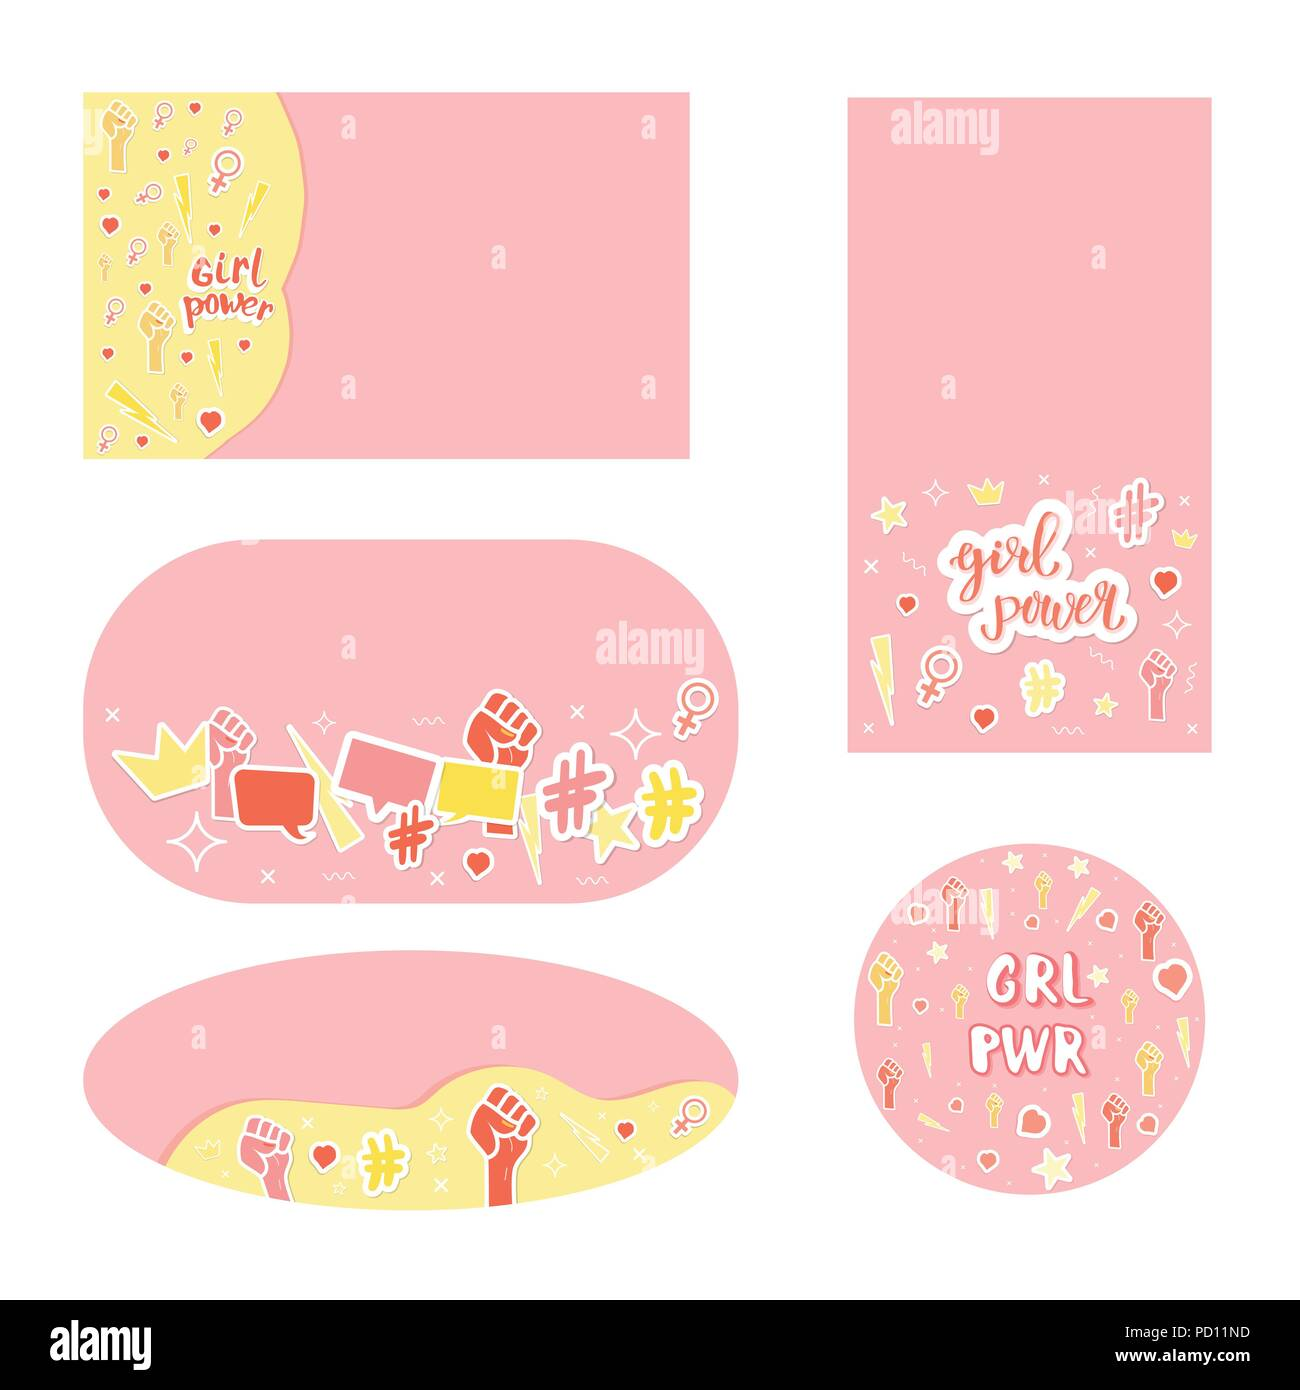 Set Of Girl Power Compositions Stickers Card Geometric Shapes Pd Simple Backgrounds With Items And Lettering Template For Graphic Design Social Med